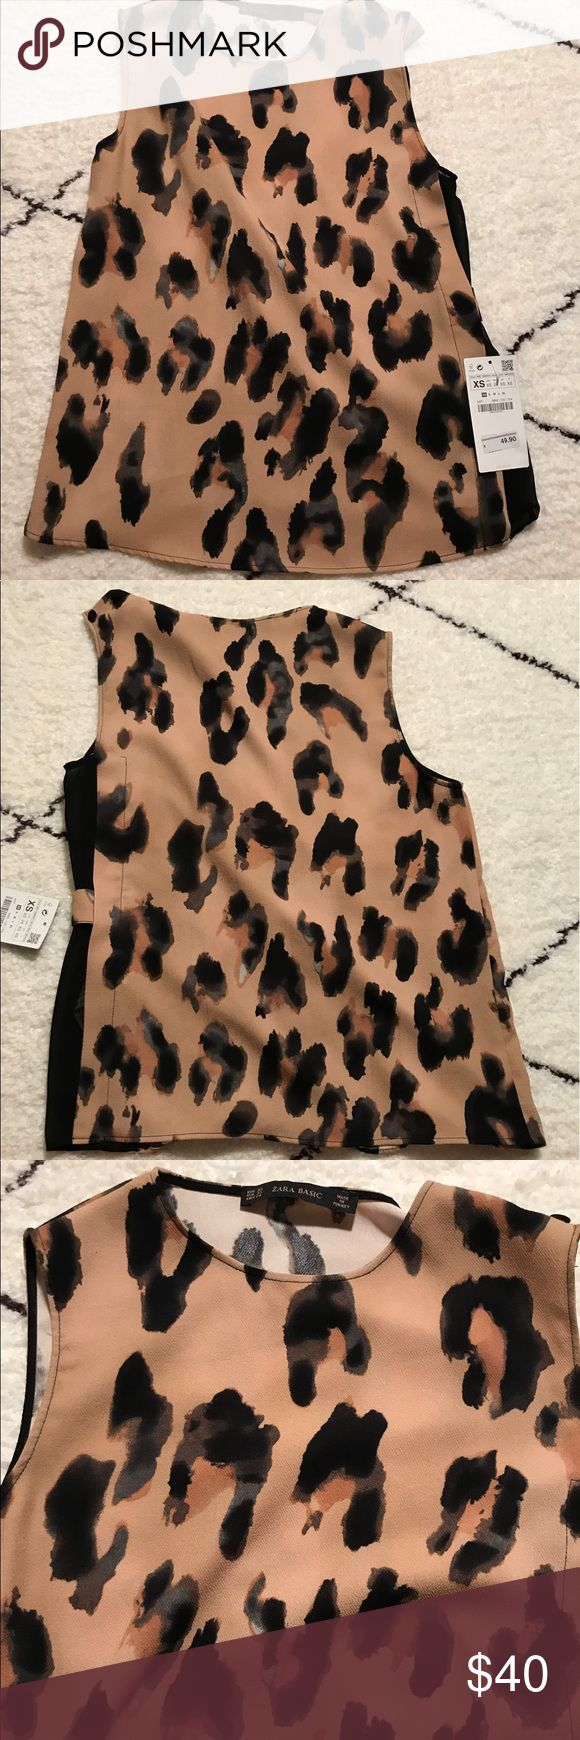 🆕 NWT Zara leopard print shirt Brand new, never worn, comes with original tag. Made of polyester. Chic! Zara Tops Camisoles